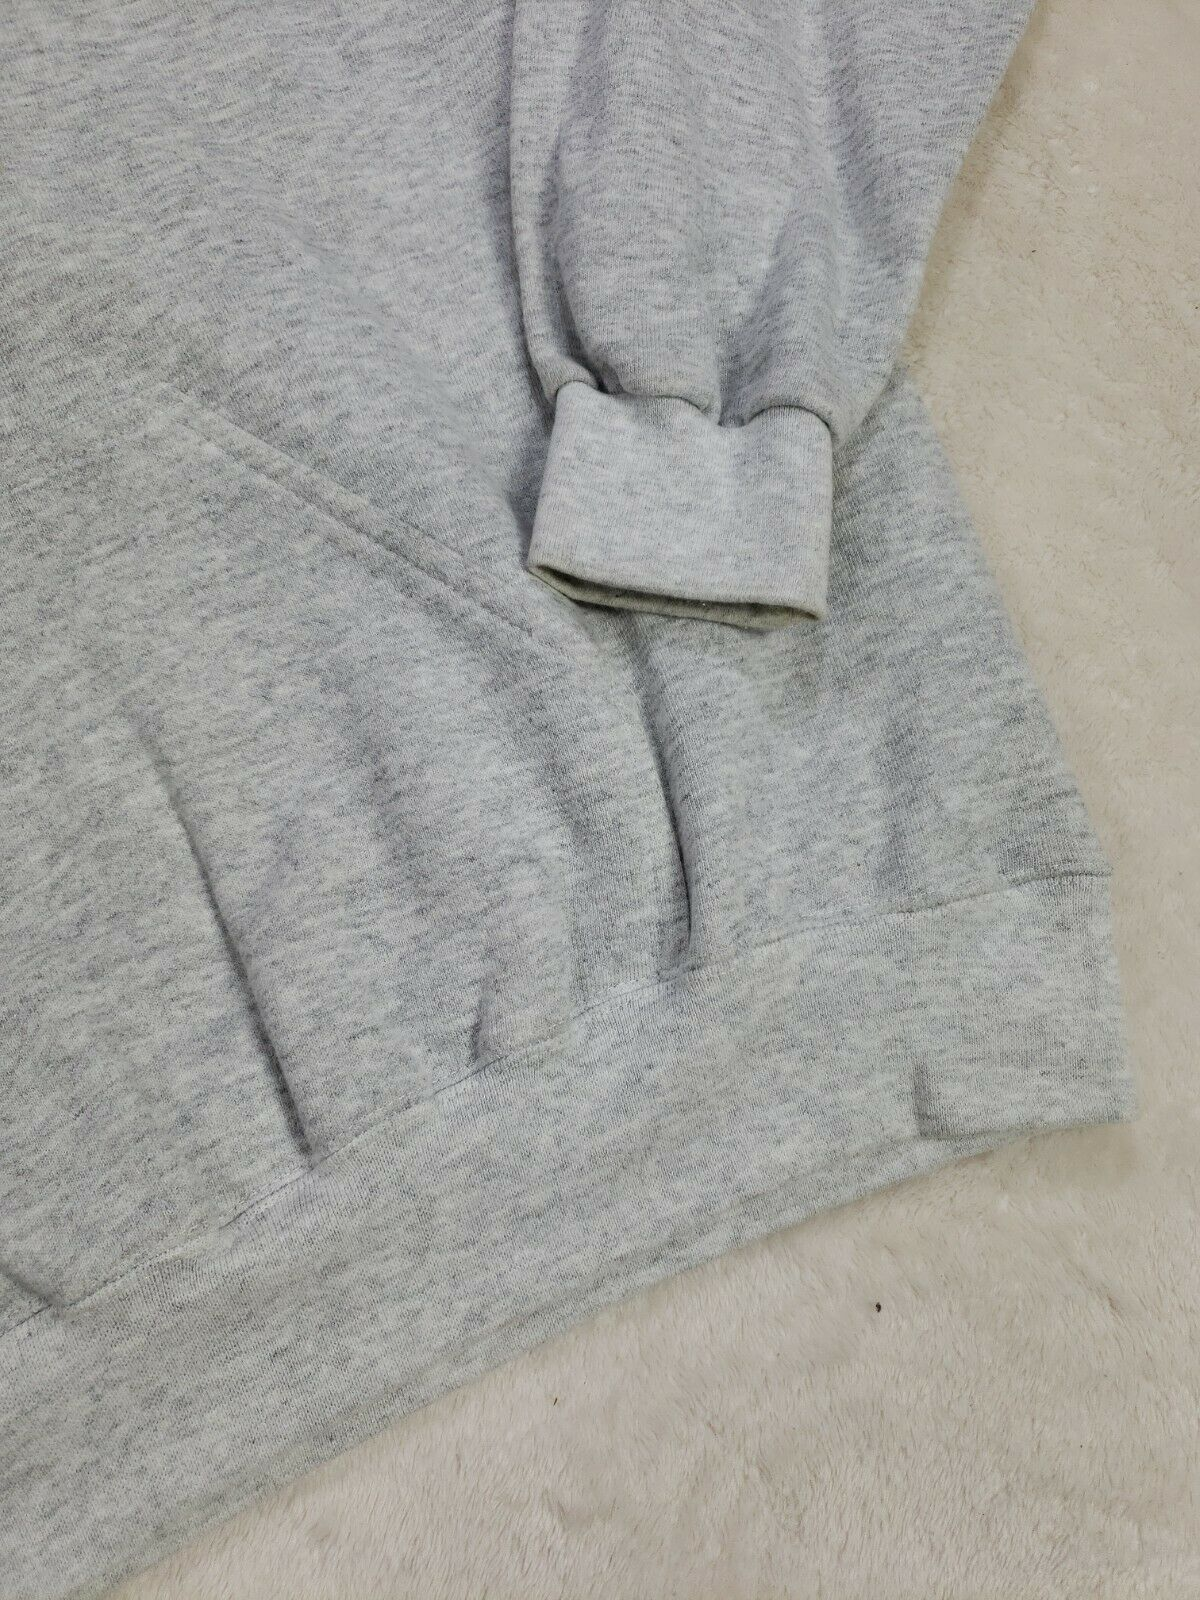 Levis Vintage Mens Gray Hoodie Size L Made in USA… - image 5